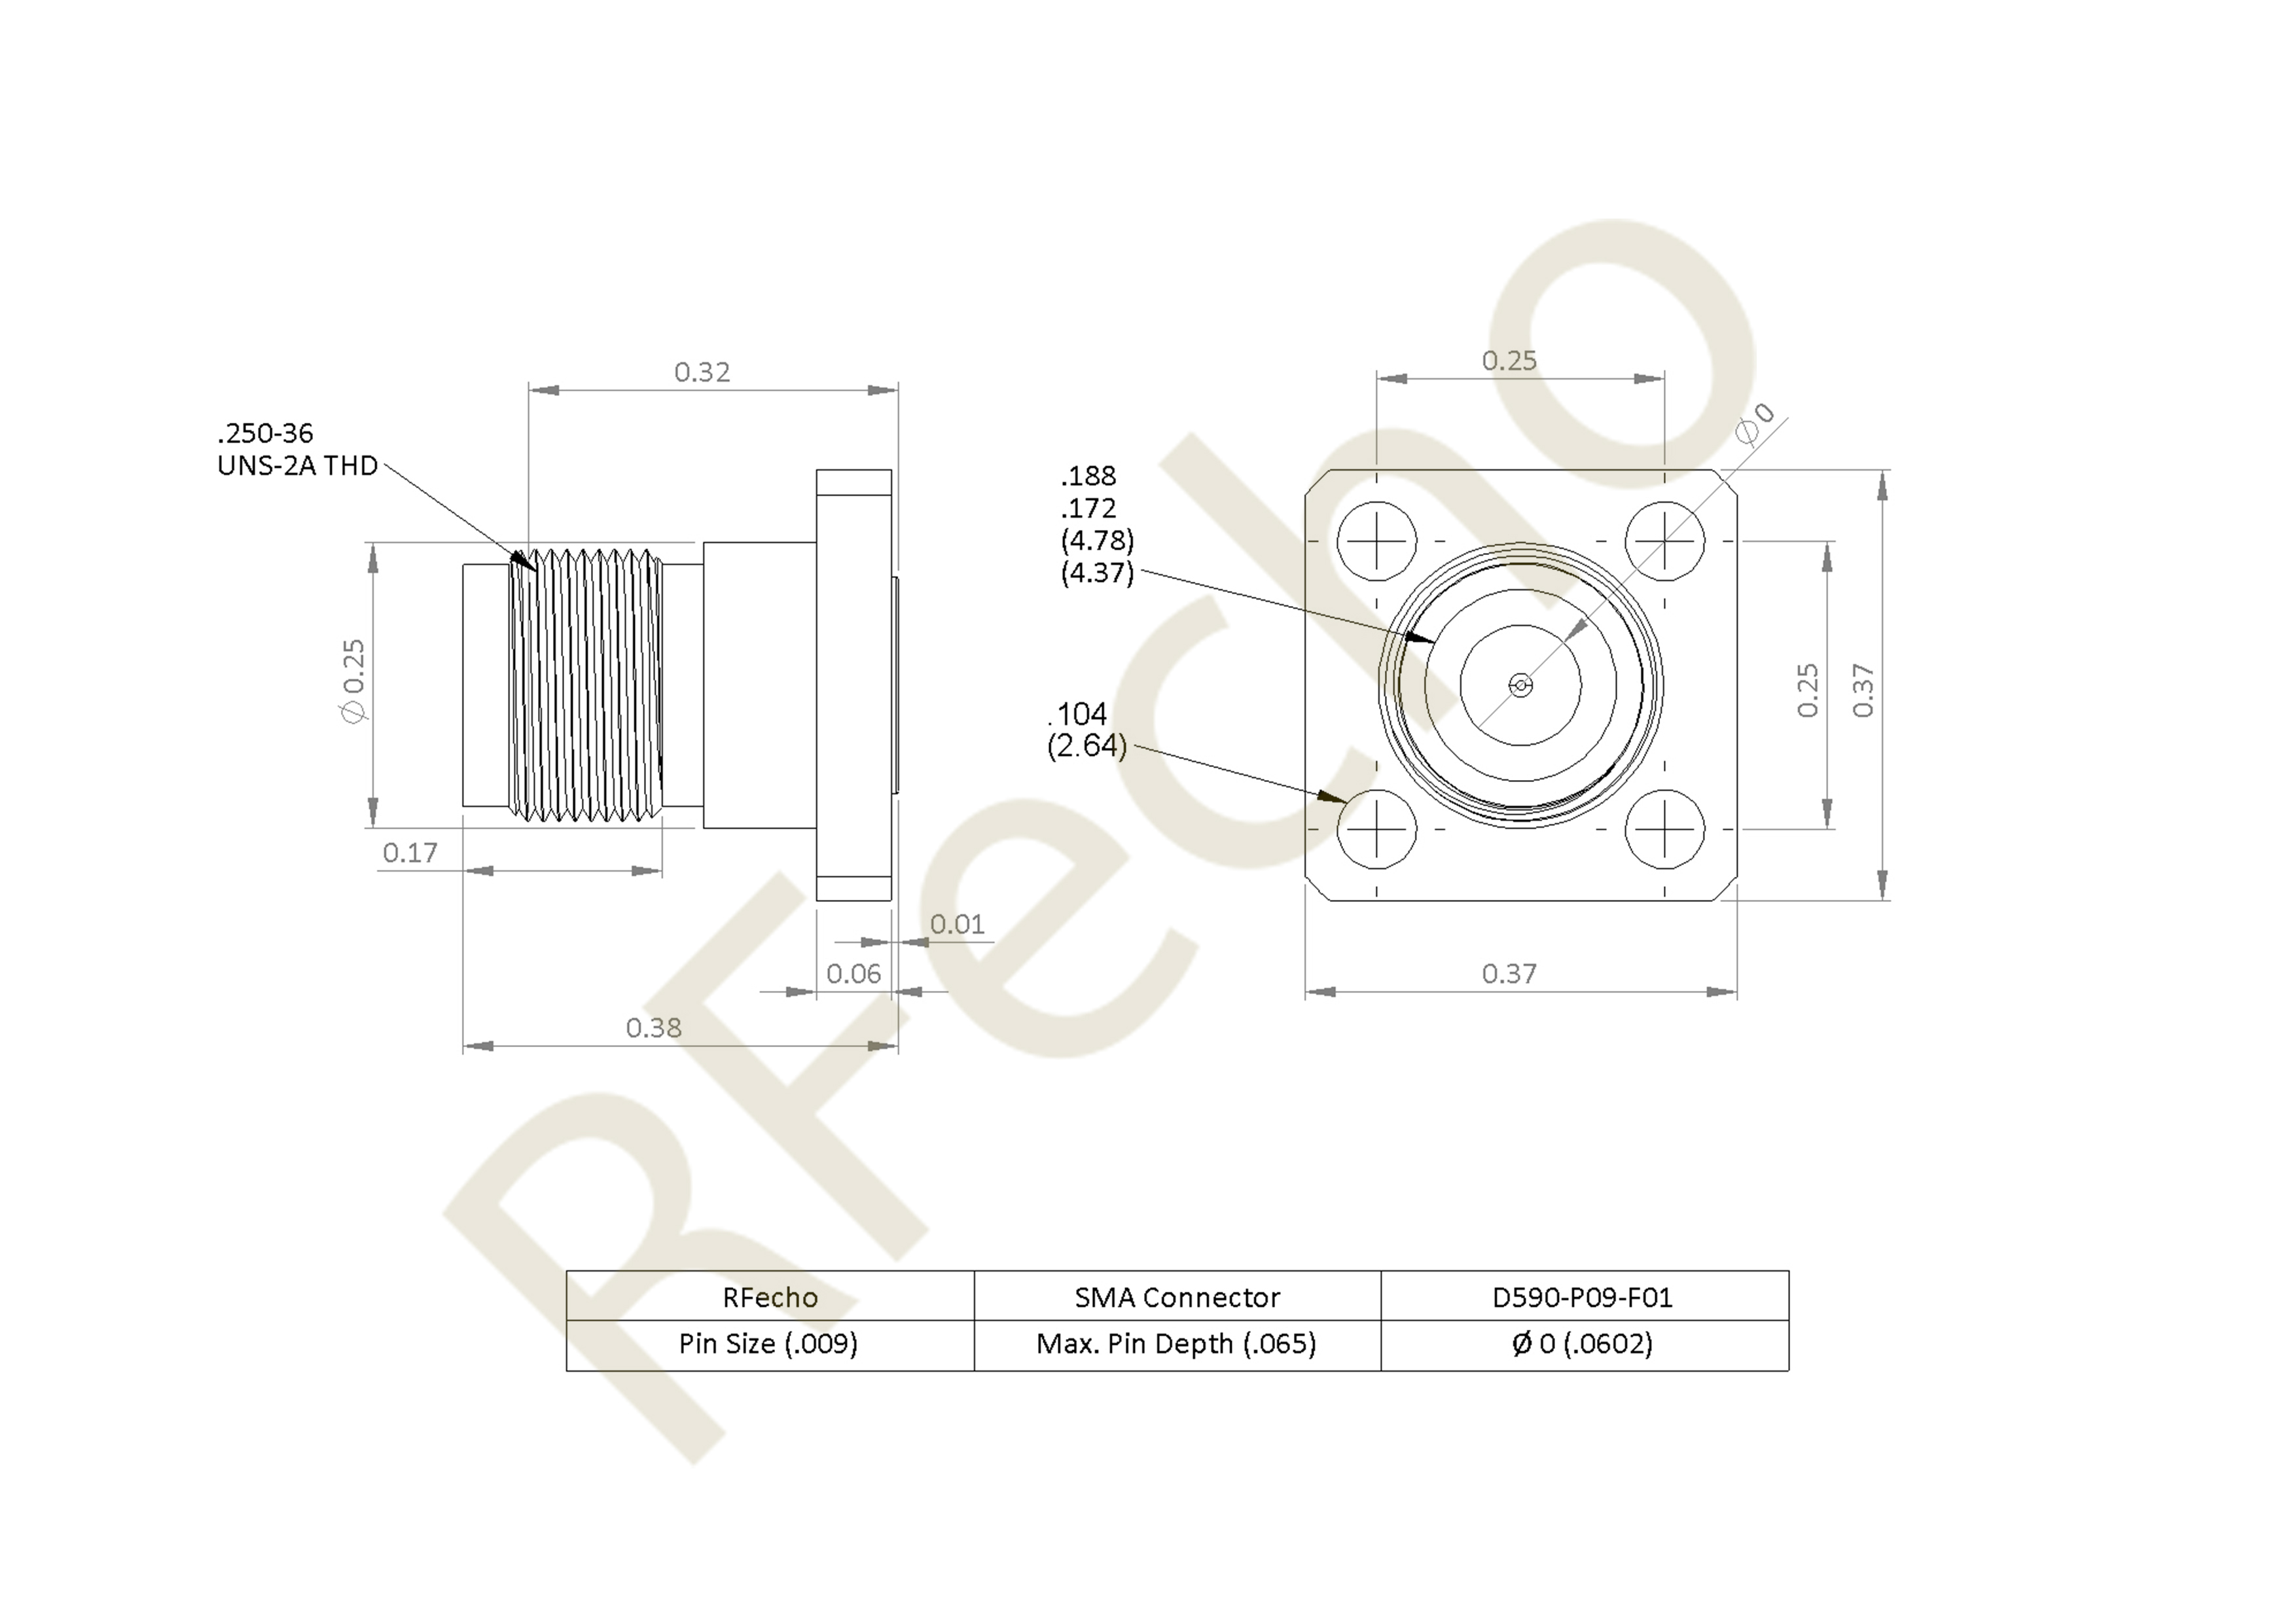 D590 P09 F01 outline SMA 27 GHz, 0.02″ Accept Pin Diameter, 4 Hole .500 Square″ Mounting Flange Male Connector